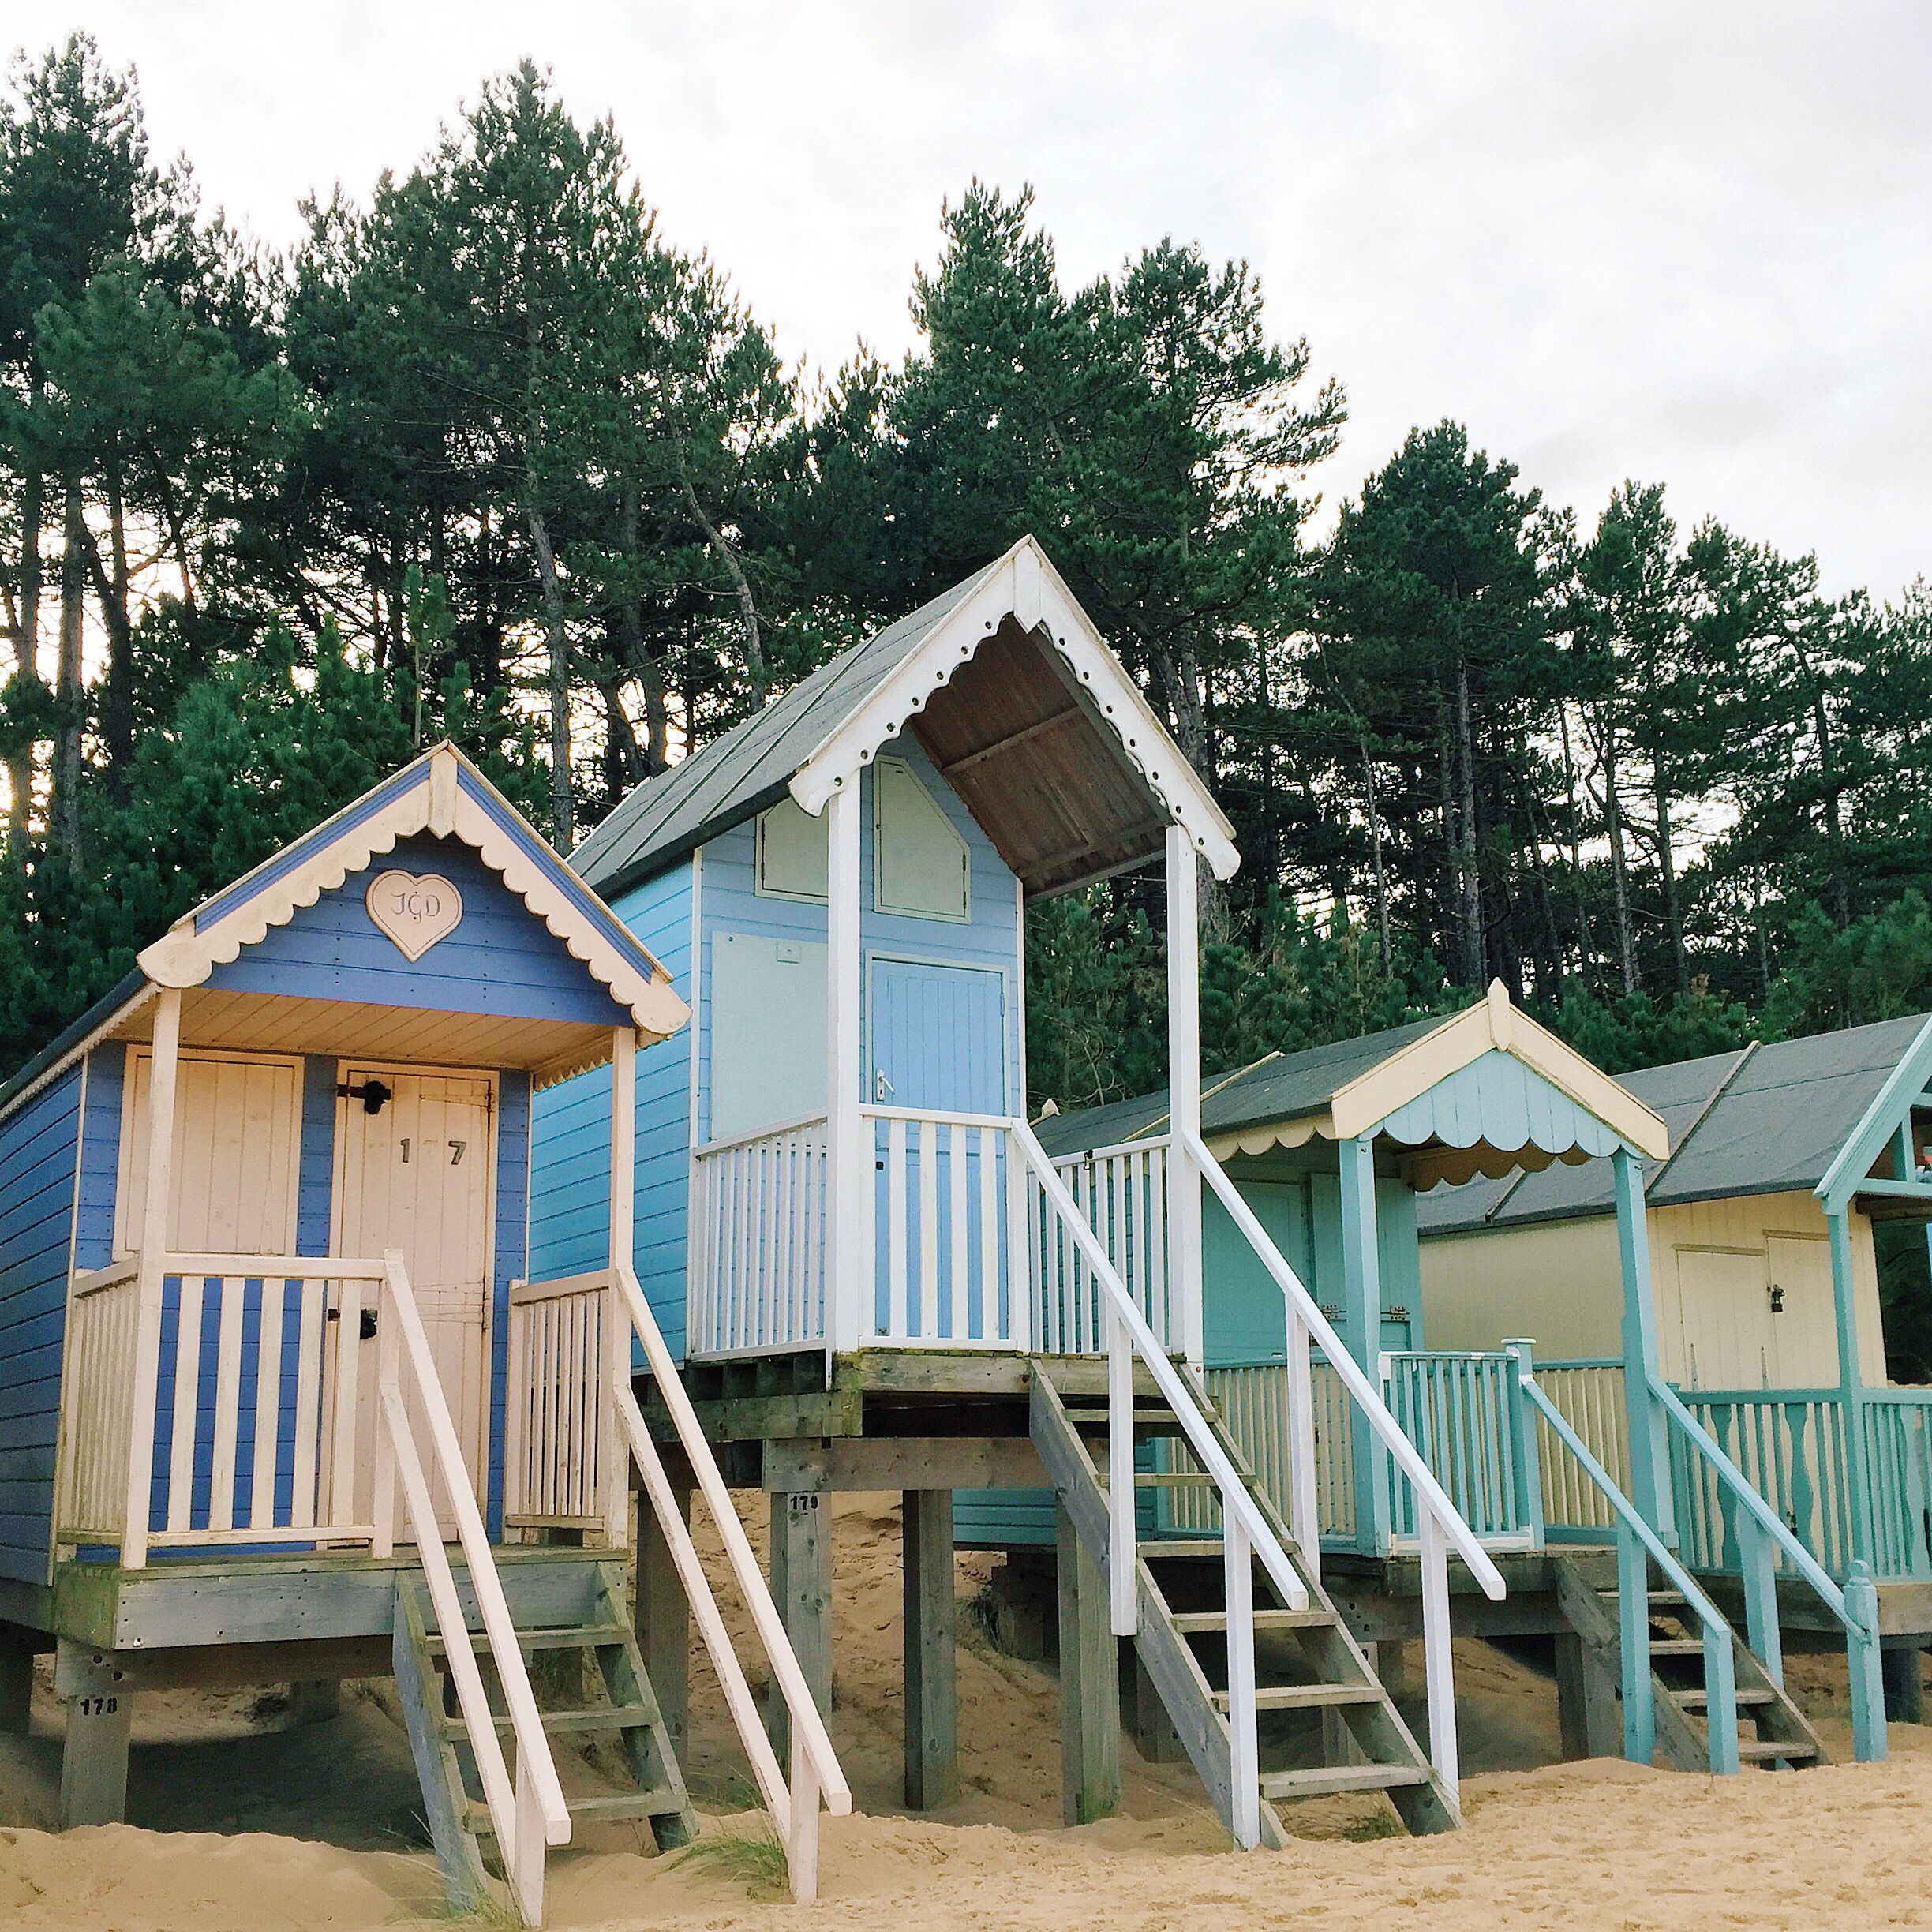 Wells-Next-The-Sea-Beach-Huts-1.jpg